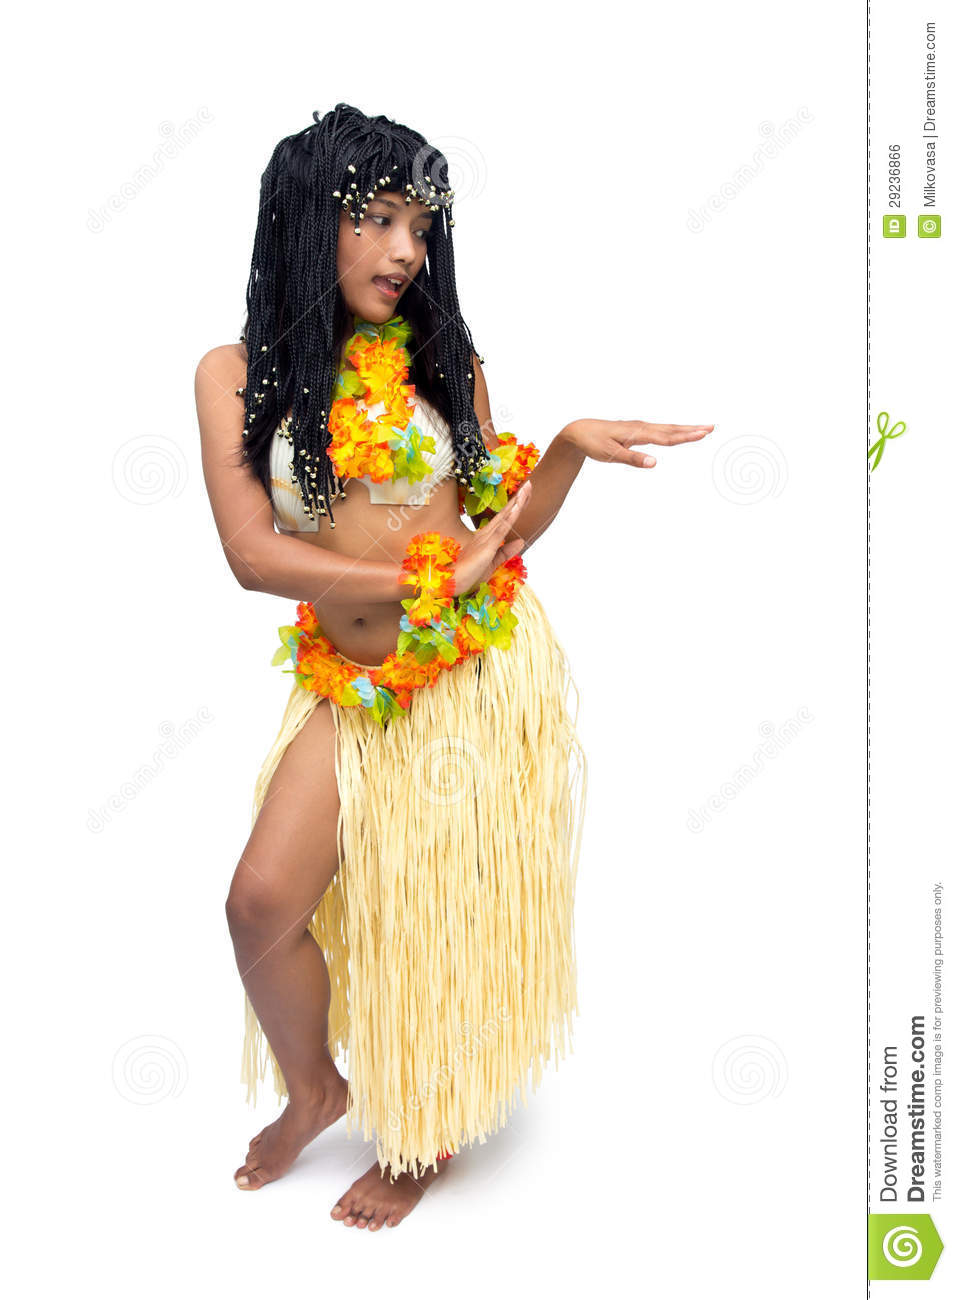 how to hula dance fast